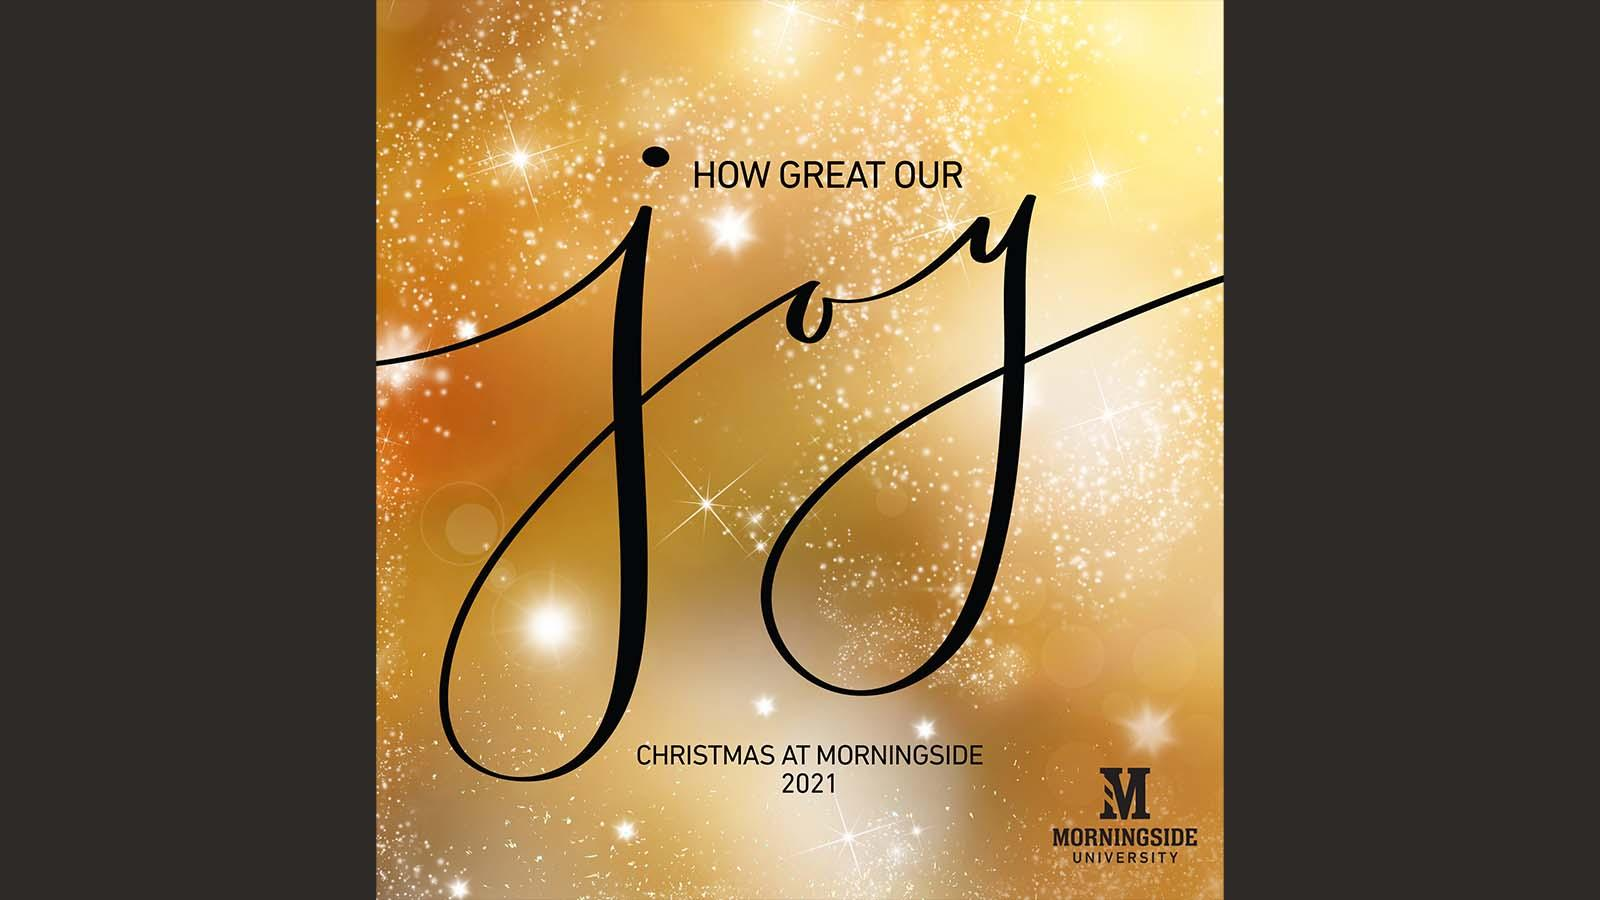 Christmas at Morningside 2021 graphic